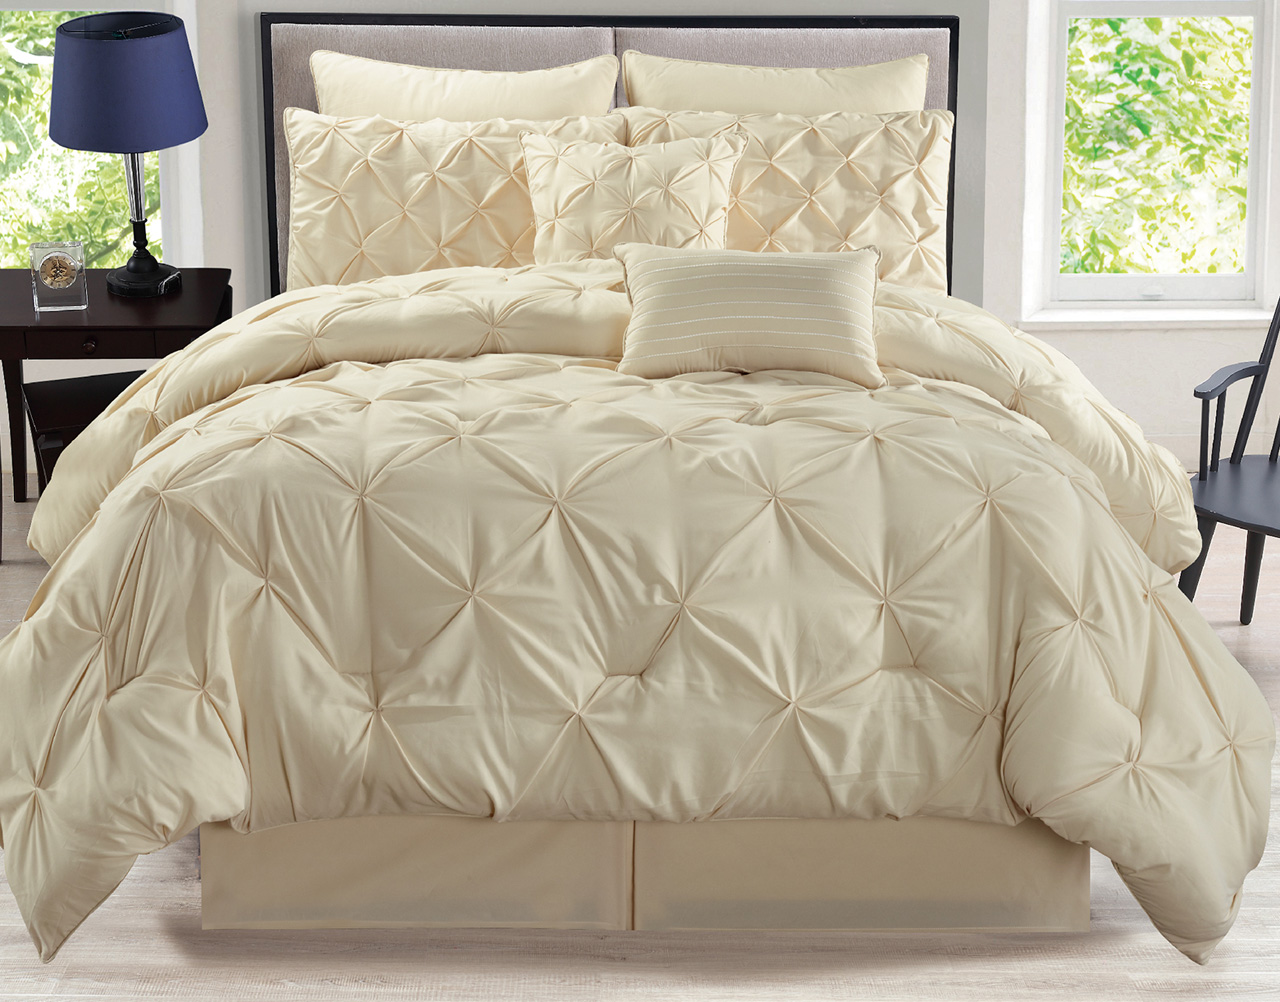 p dillards comforter wright julia eyelet ivory piper sets floral zi trimmed set